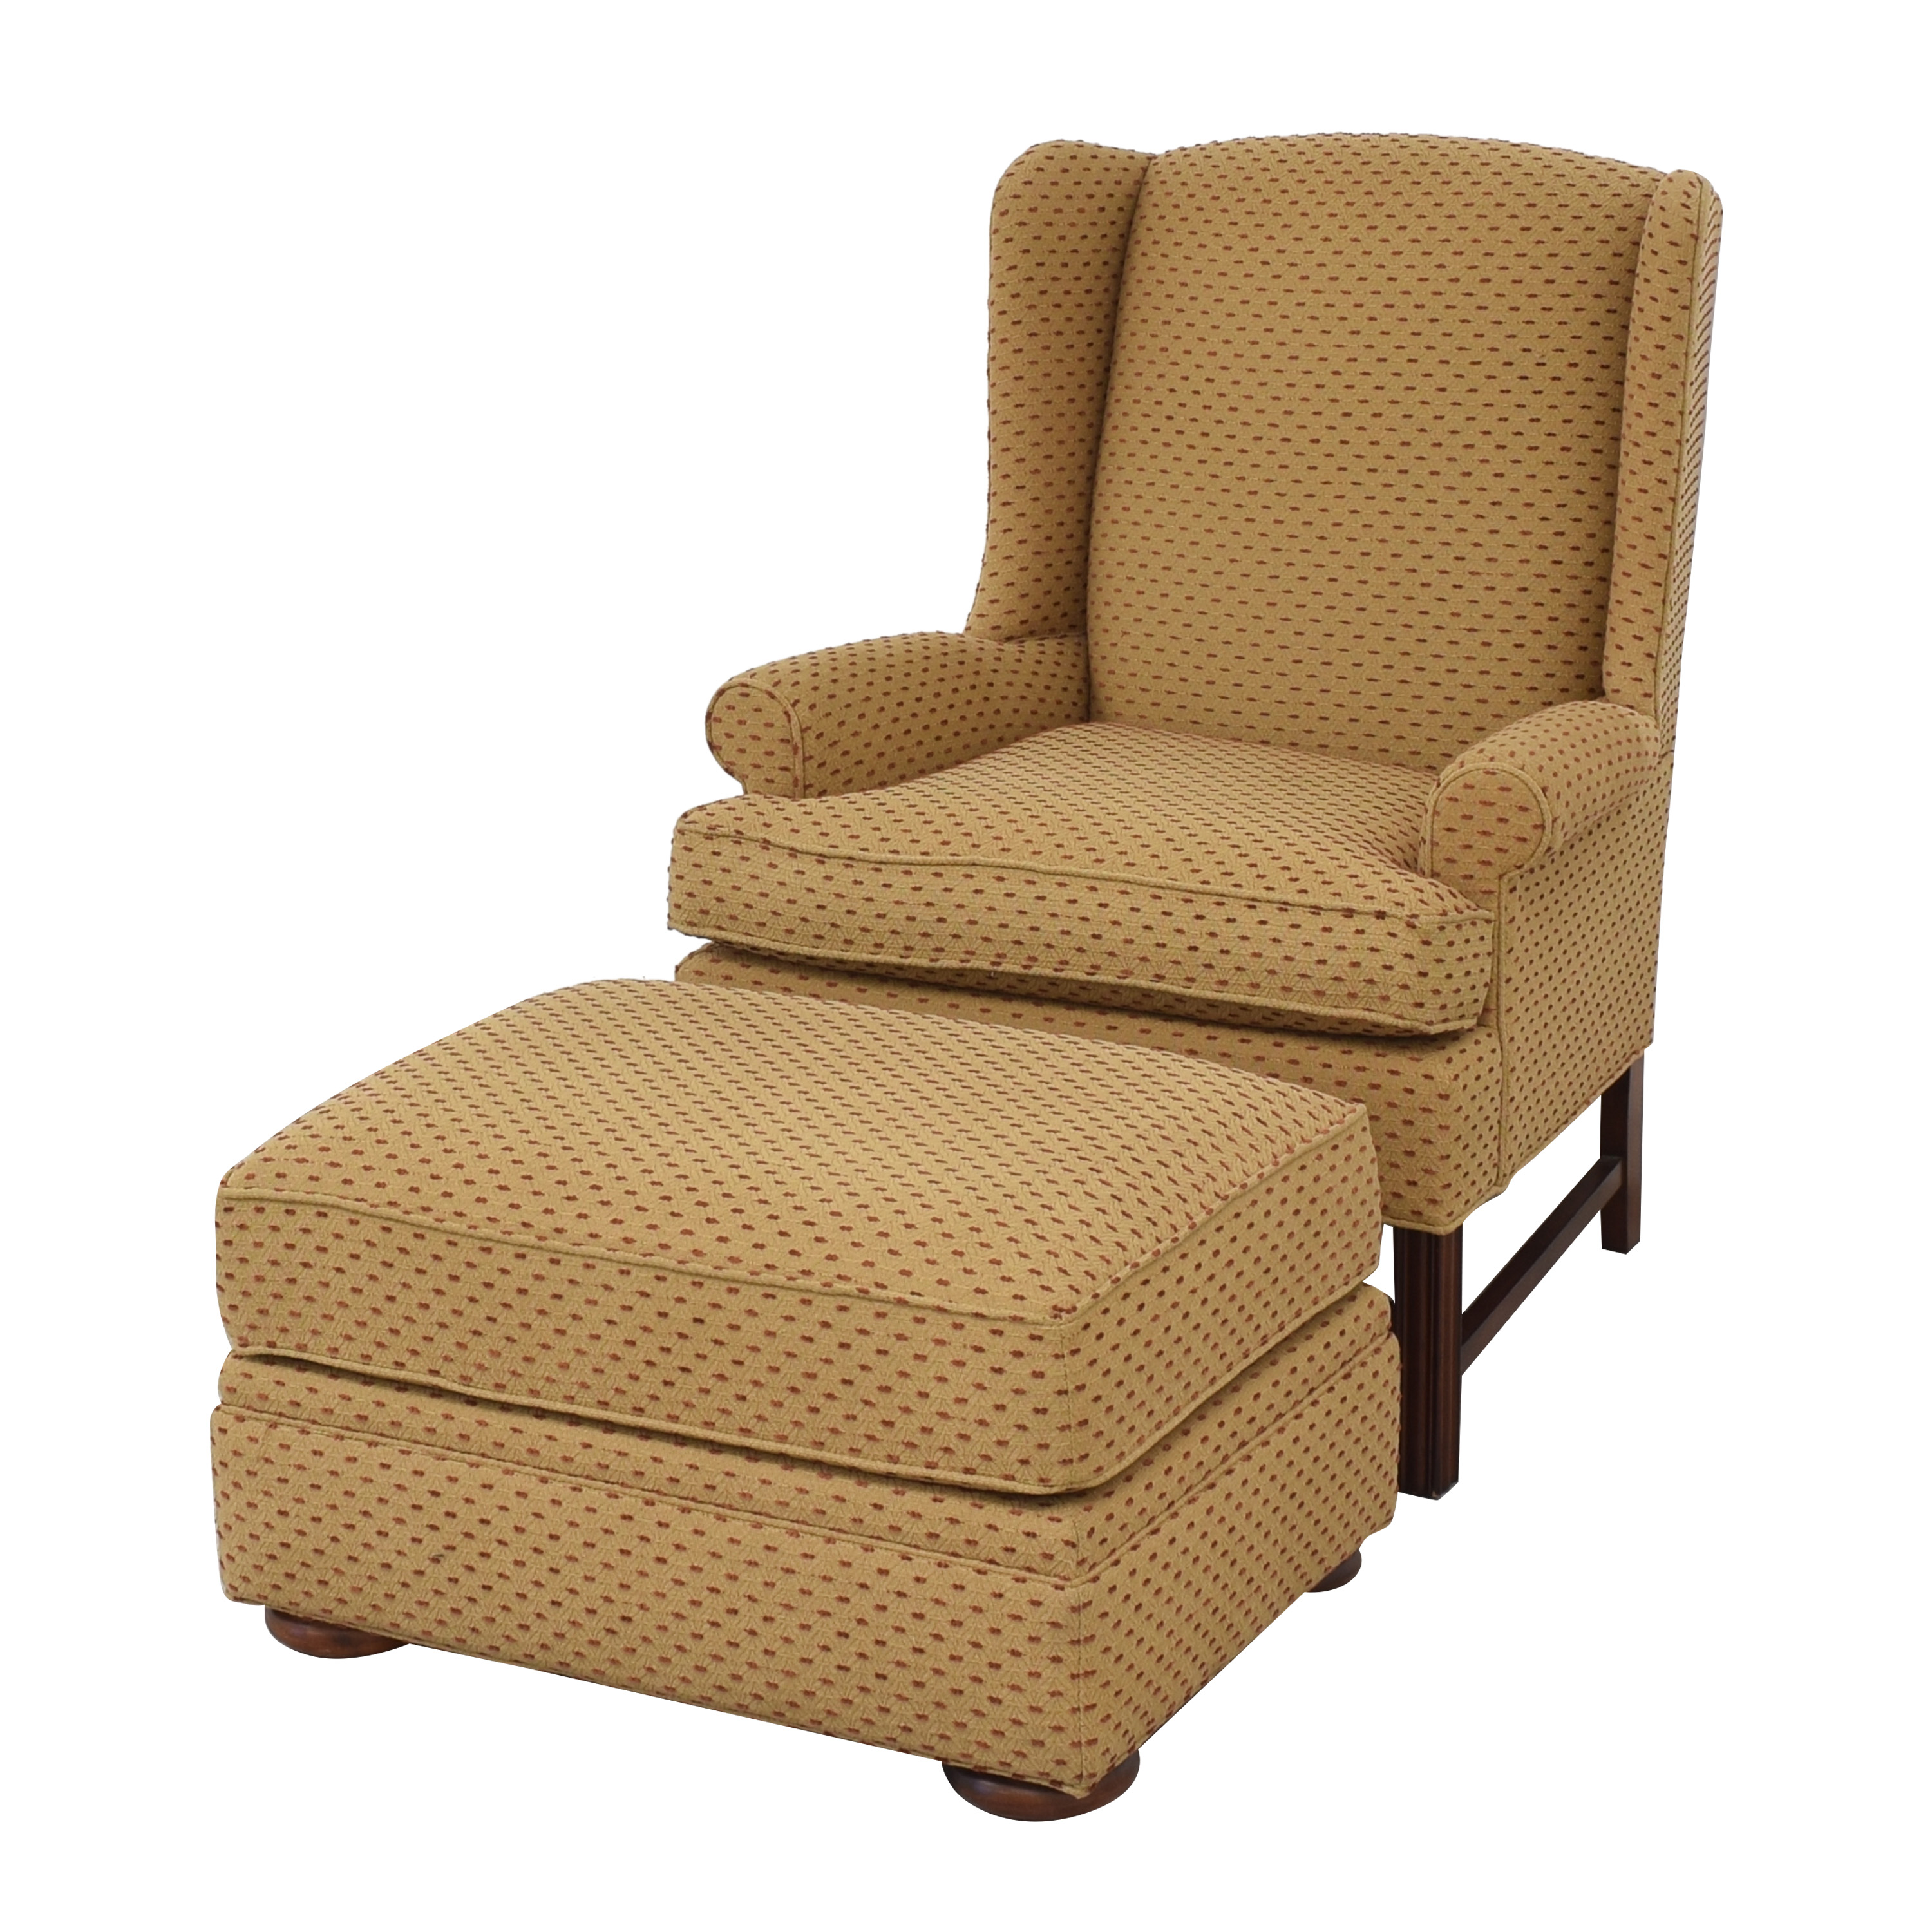 Thomasville Accent Chair with Ottoman / Accent Chairs